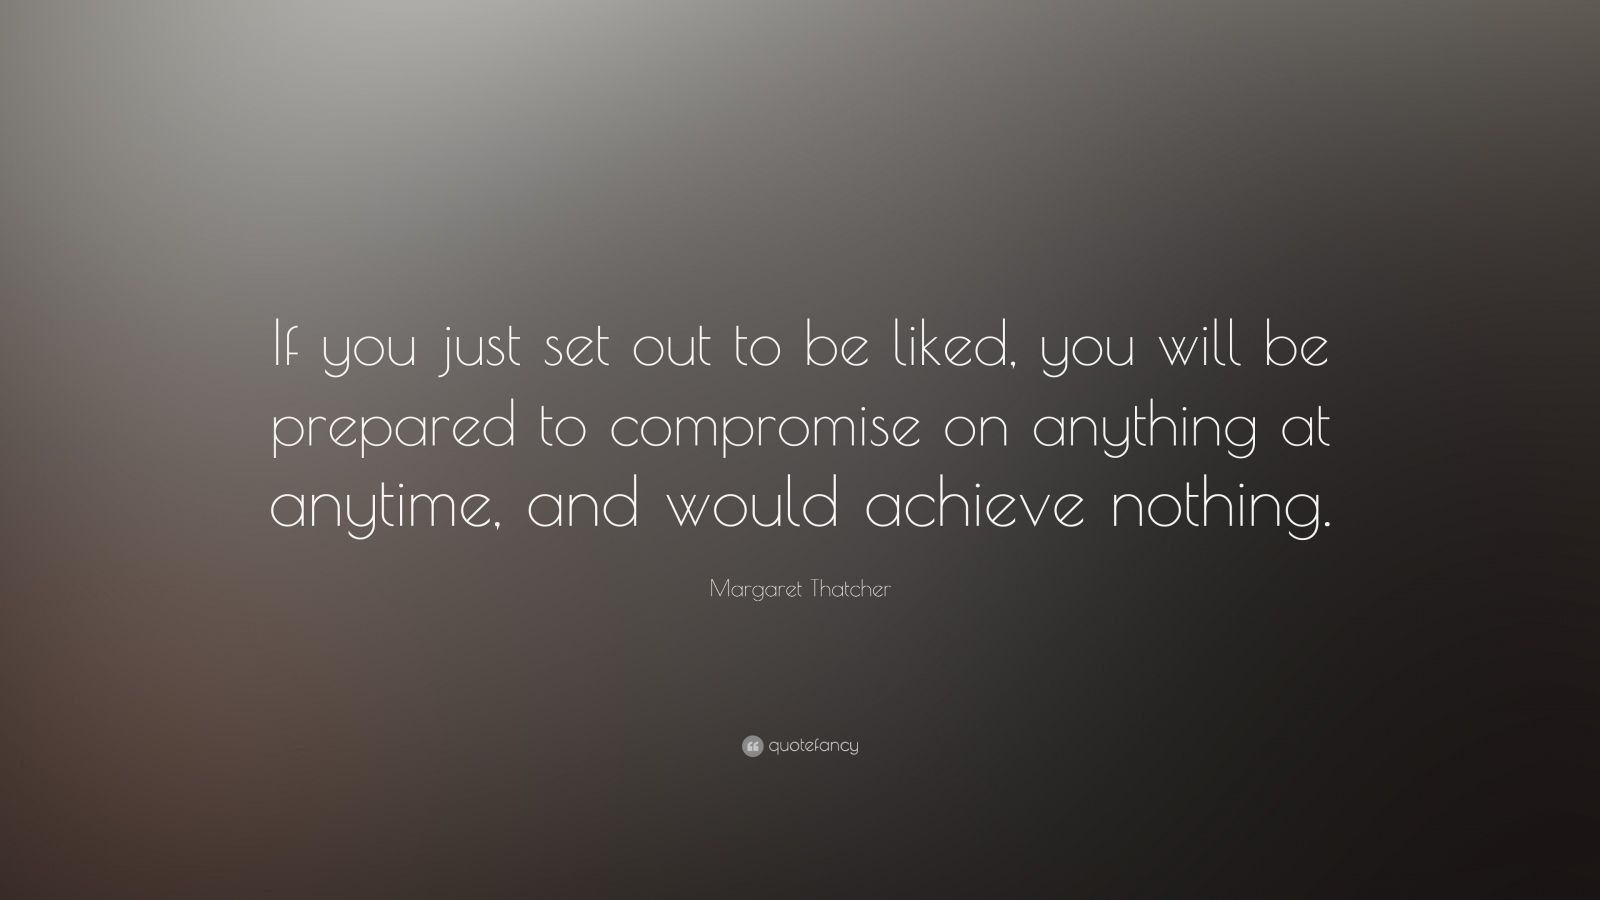 """Margaret Thatcher Quote: """"If you just set out to be liked, you will be prepared to compromise on anything at anytime, and would achieve nothing. """""""